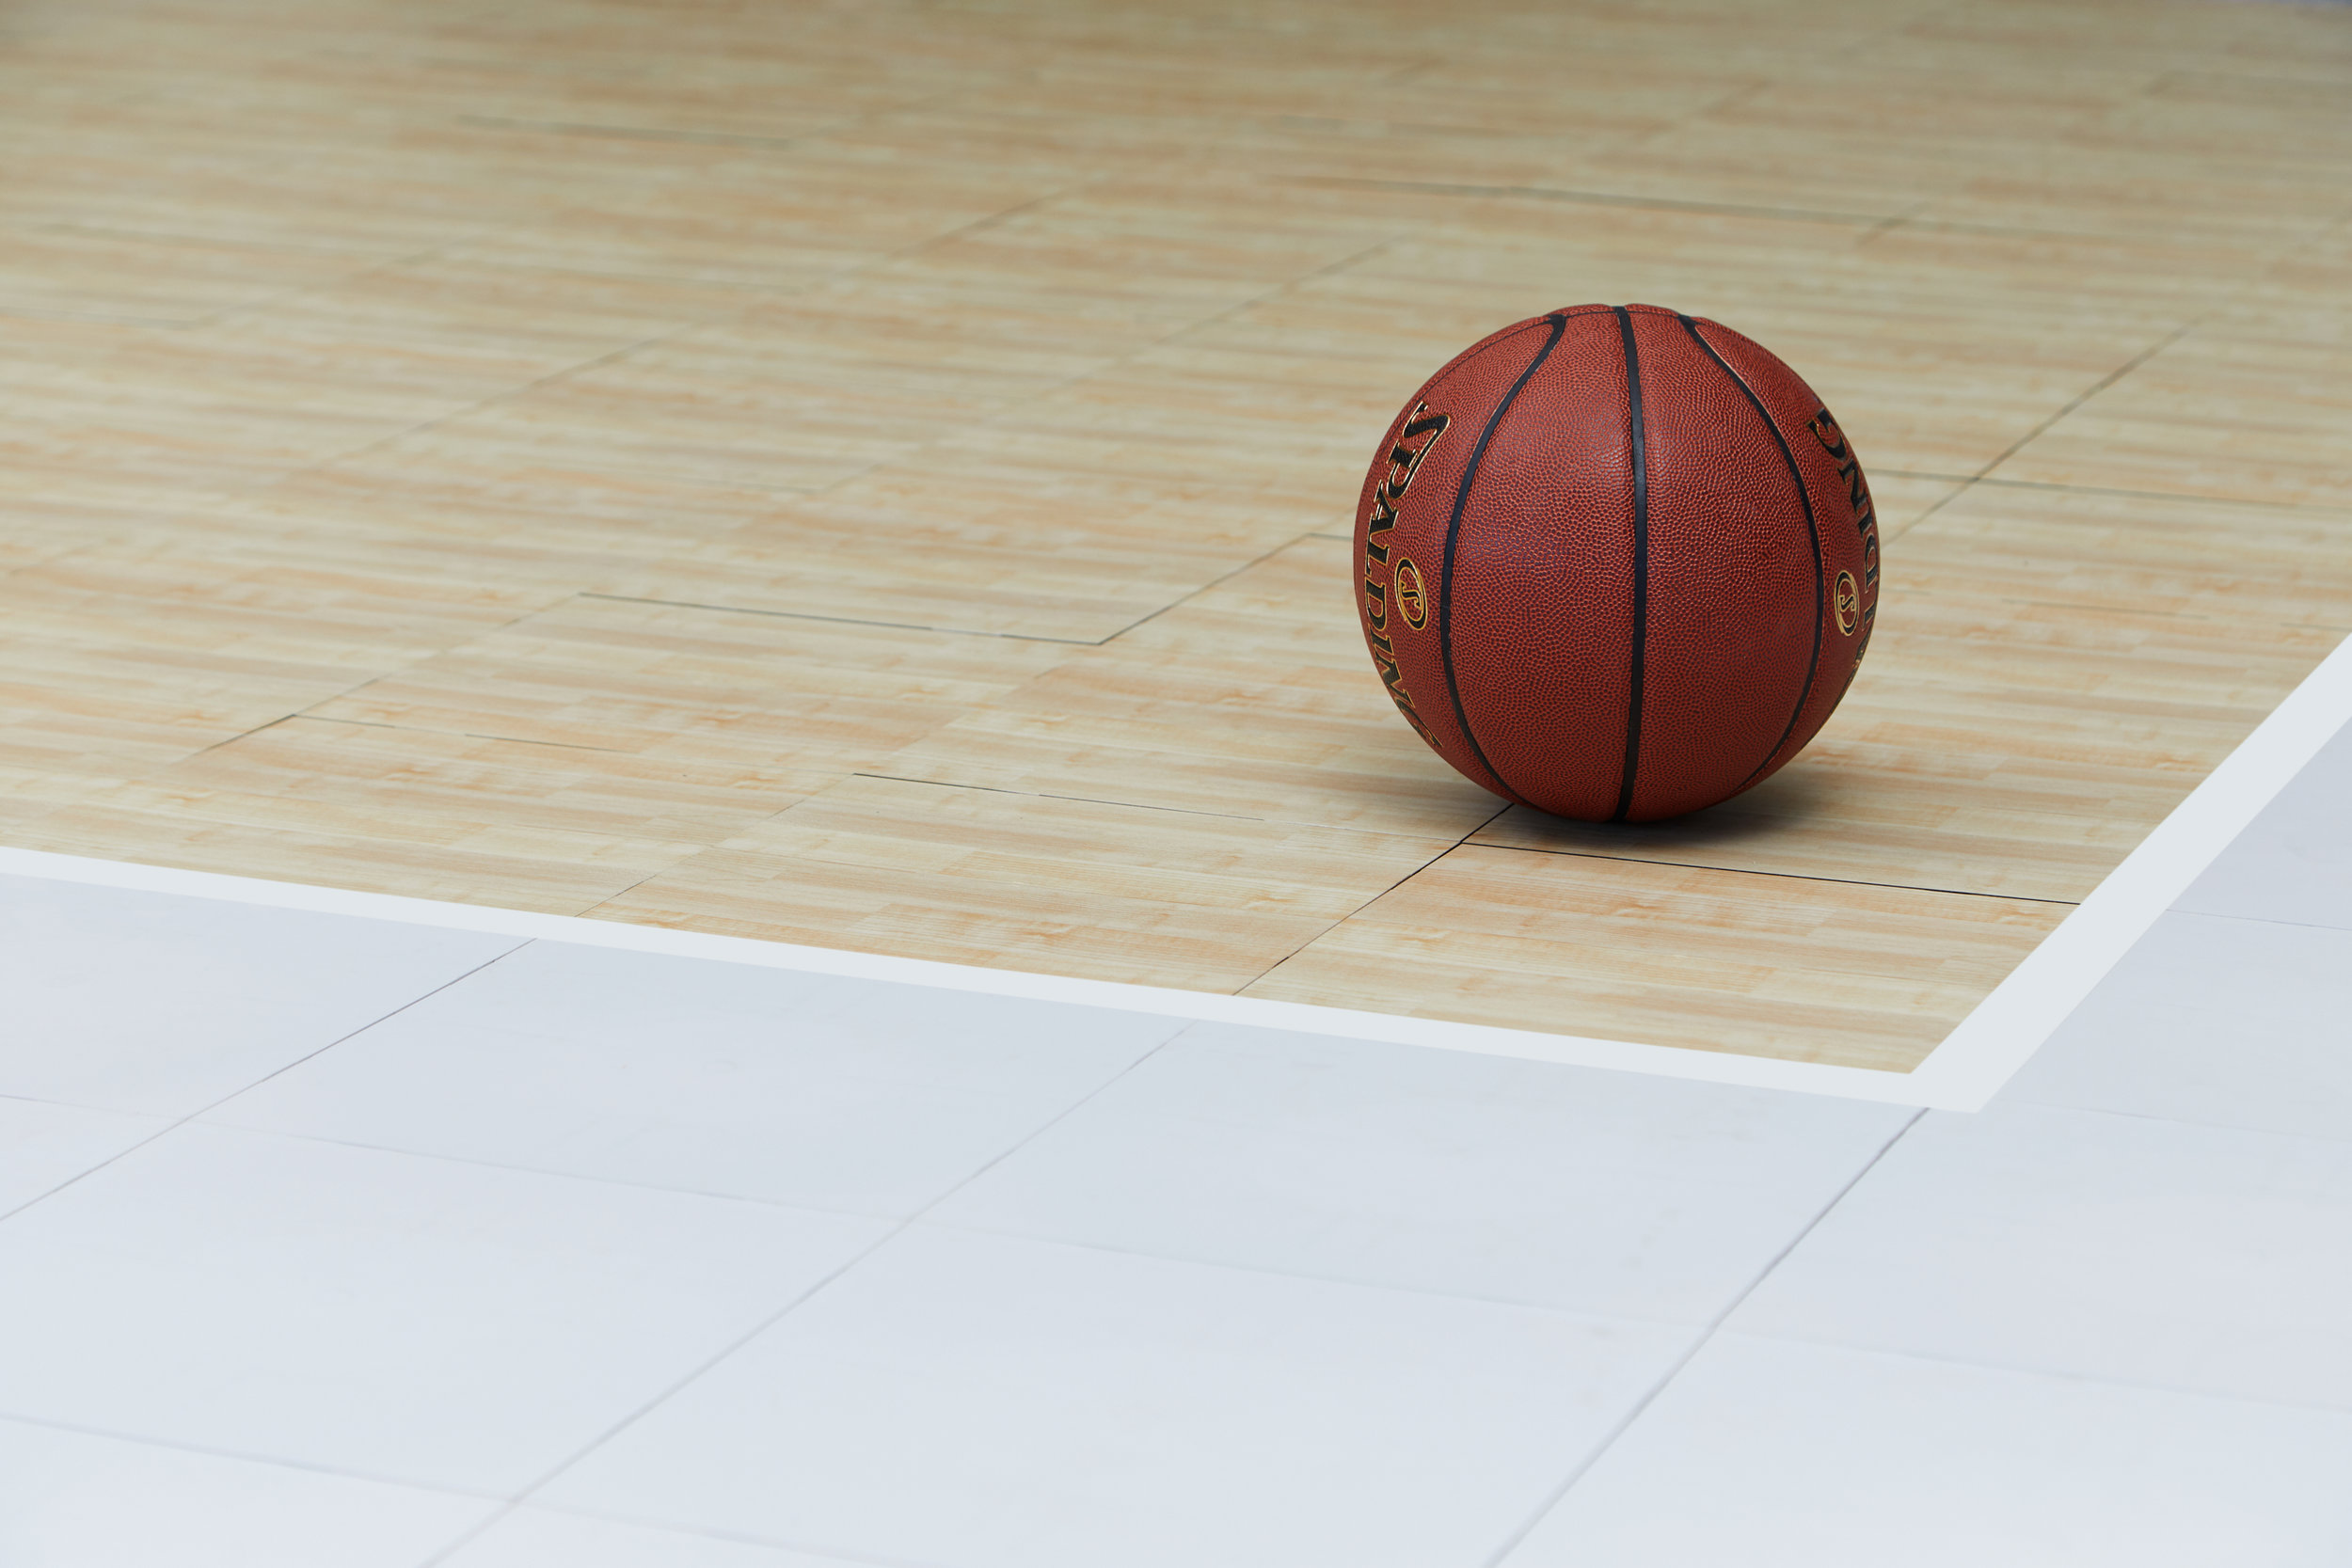 Prefect for game courts and basketball floors